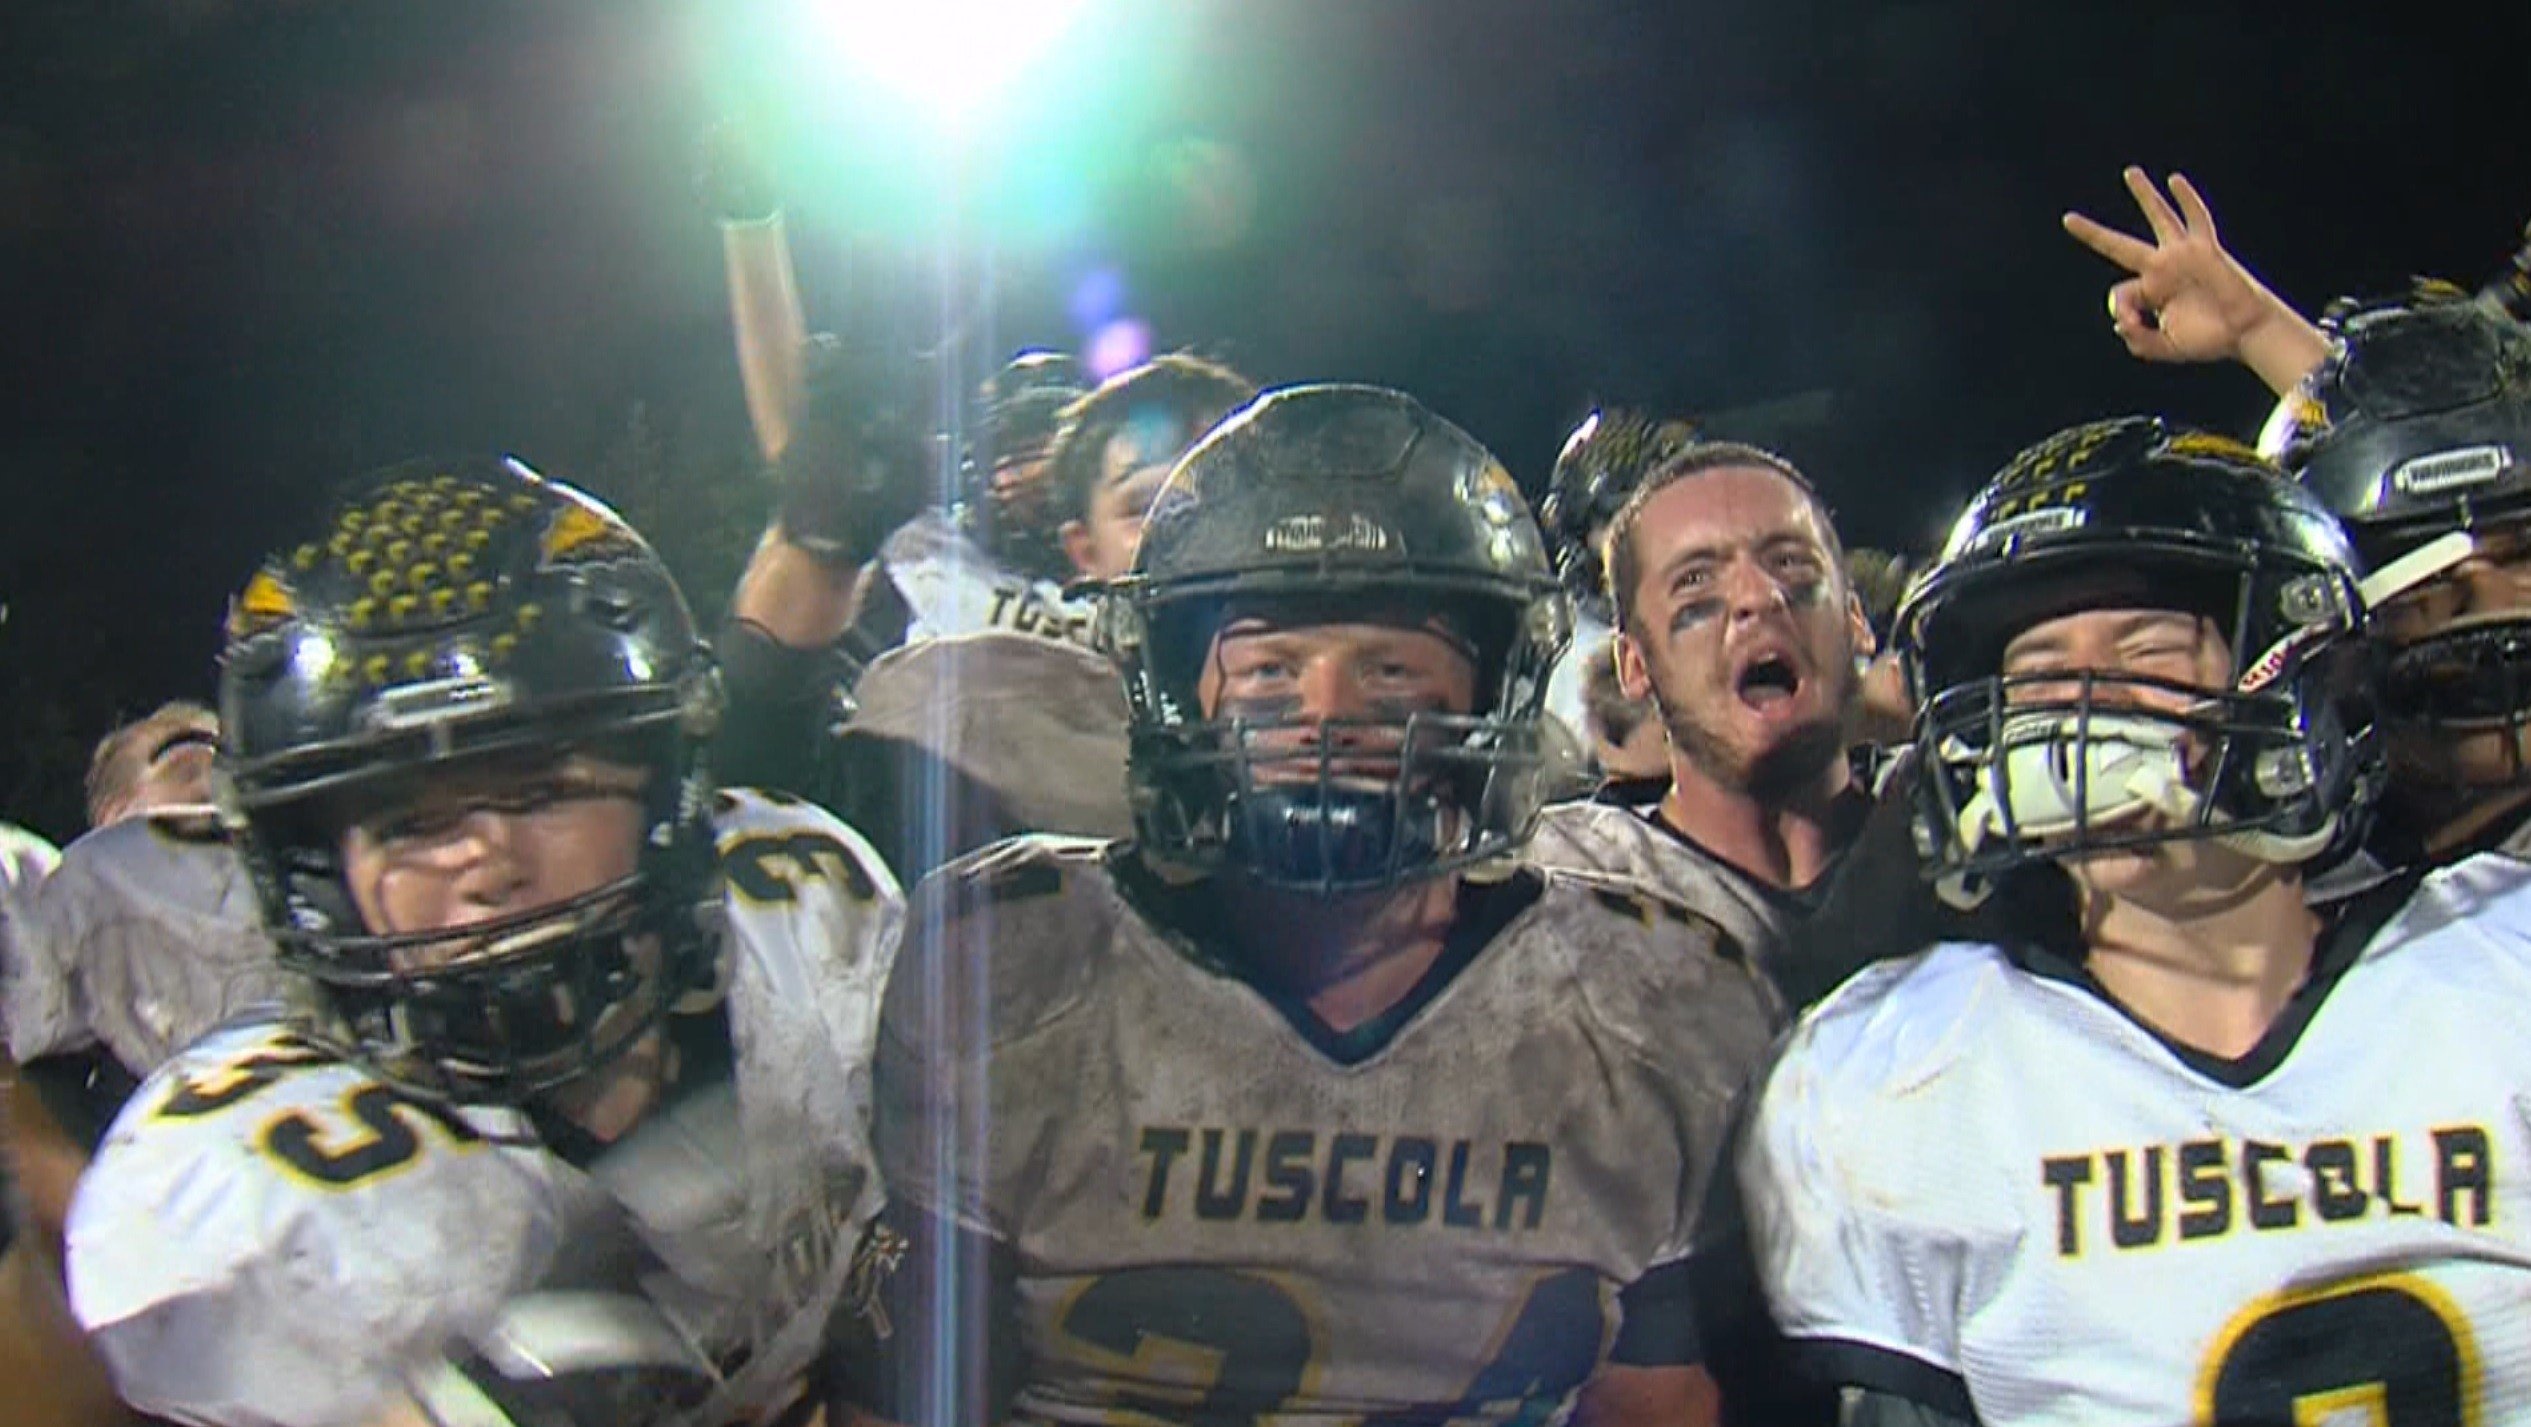 1A No.2 Tuscola knocked off 3A No. 5 St. Teresa 24-21 in the WAND Game of the Week.